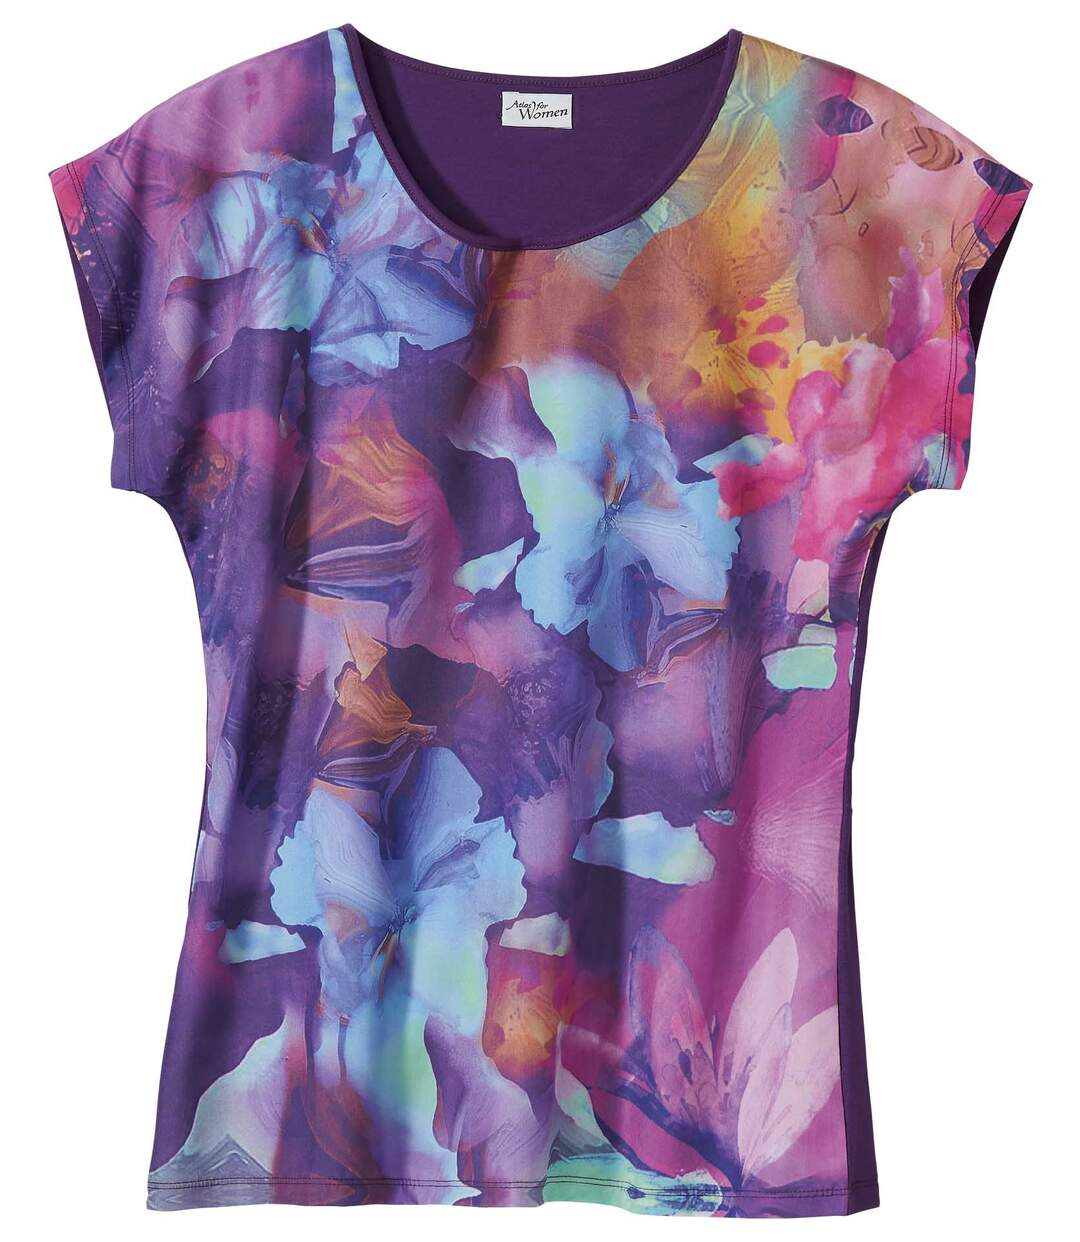 Women's Purple Dual Material Floral T-Shirt